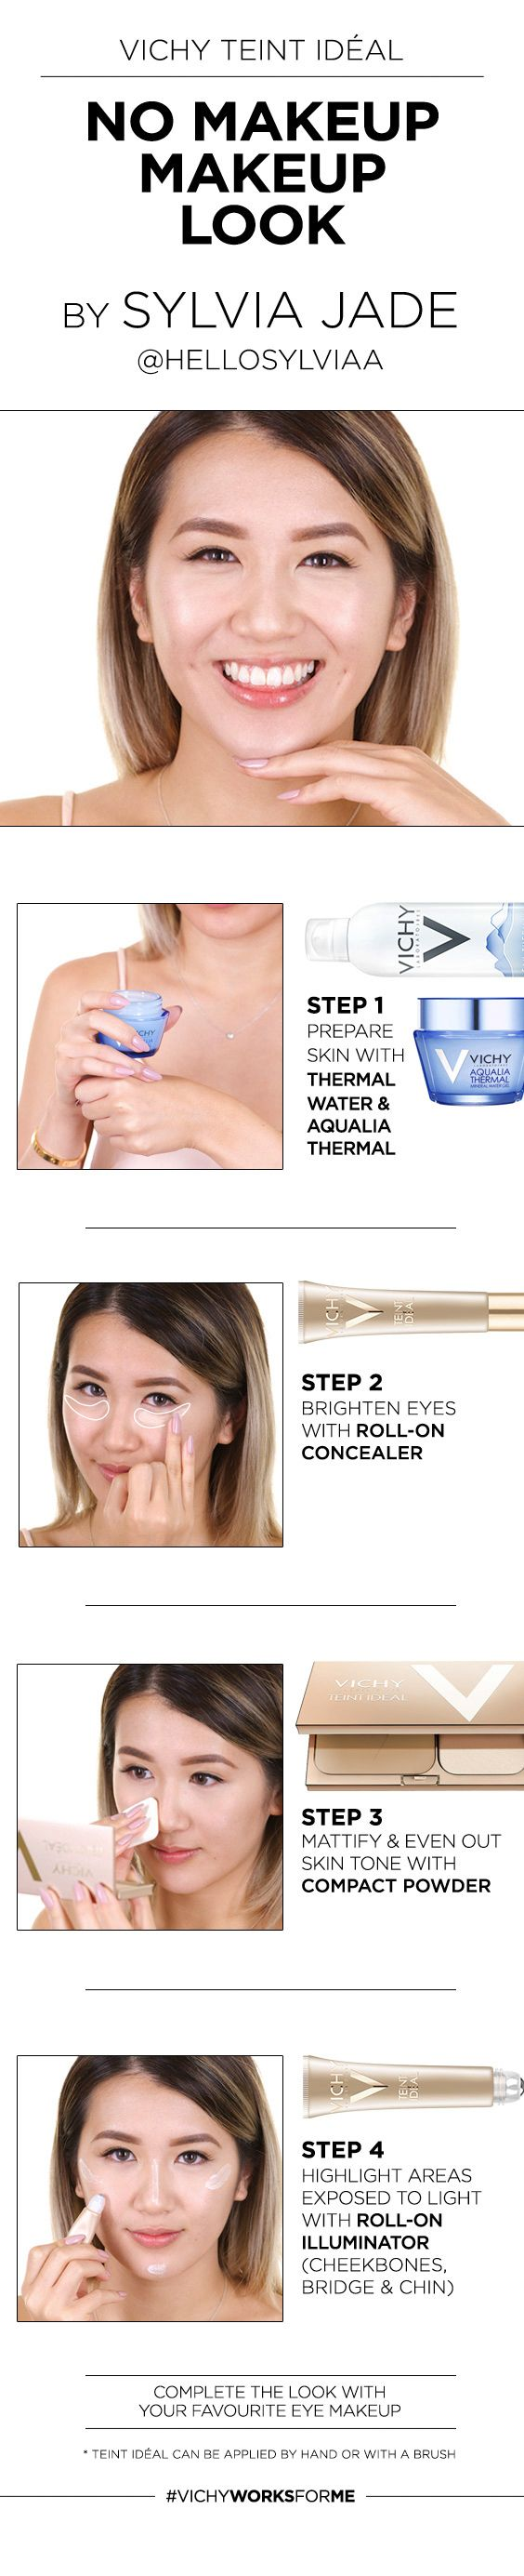 Find out more about Sylvia Jade's Teint Idéal routine: http://www.vichy.ca/en/makeup-teint-ideal-info